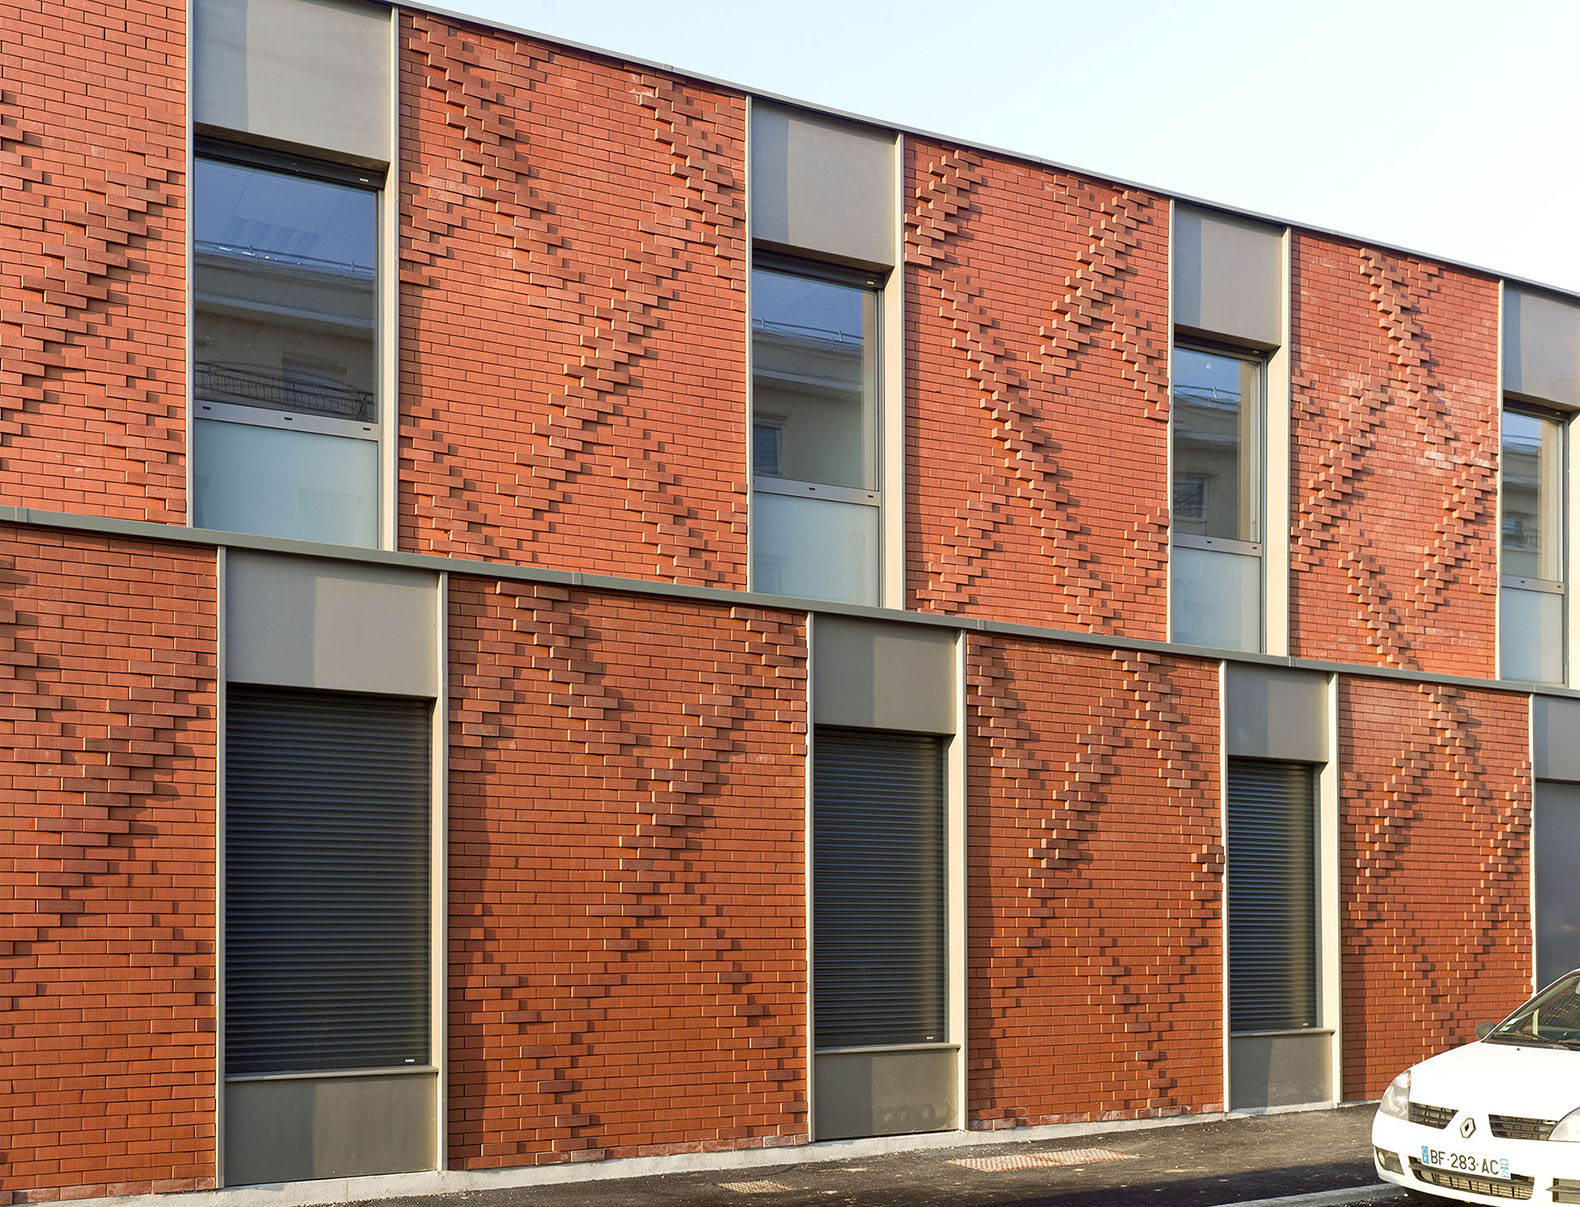 A surprising tapestry of brick clads the house for for Brick facade house